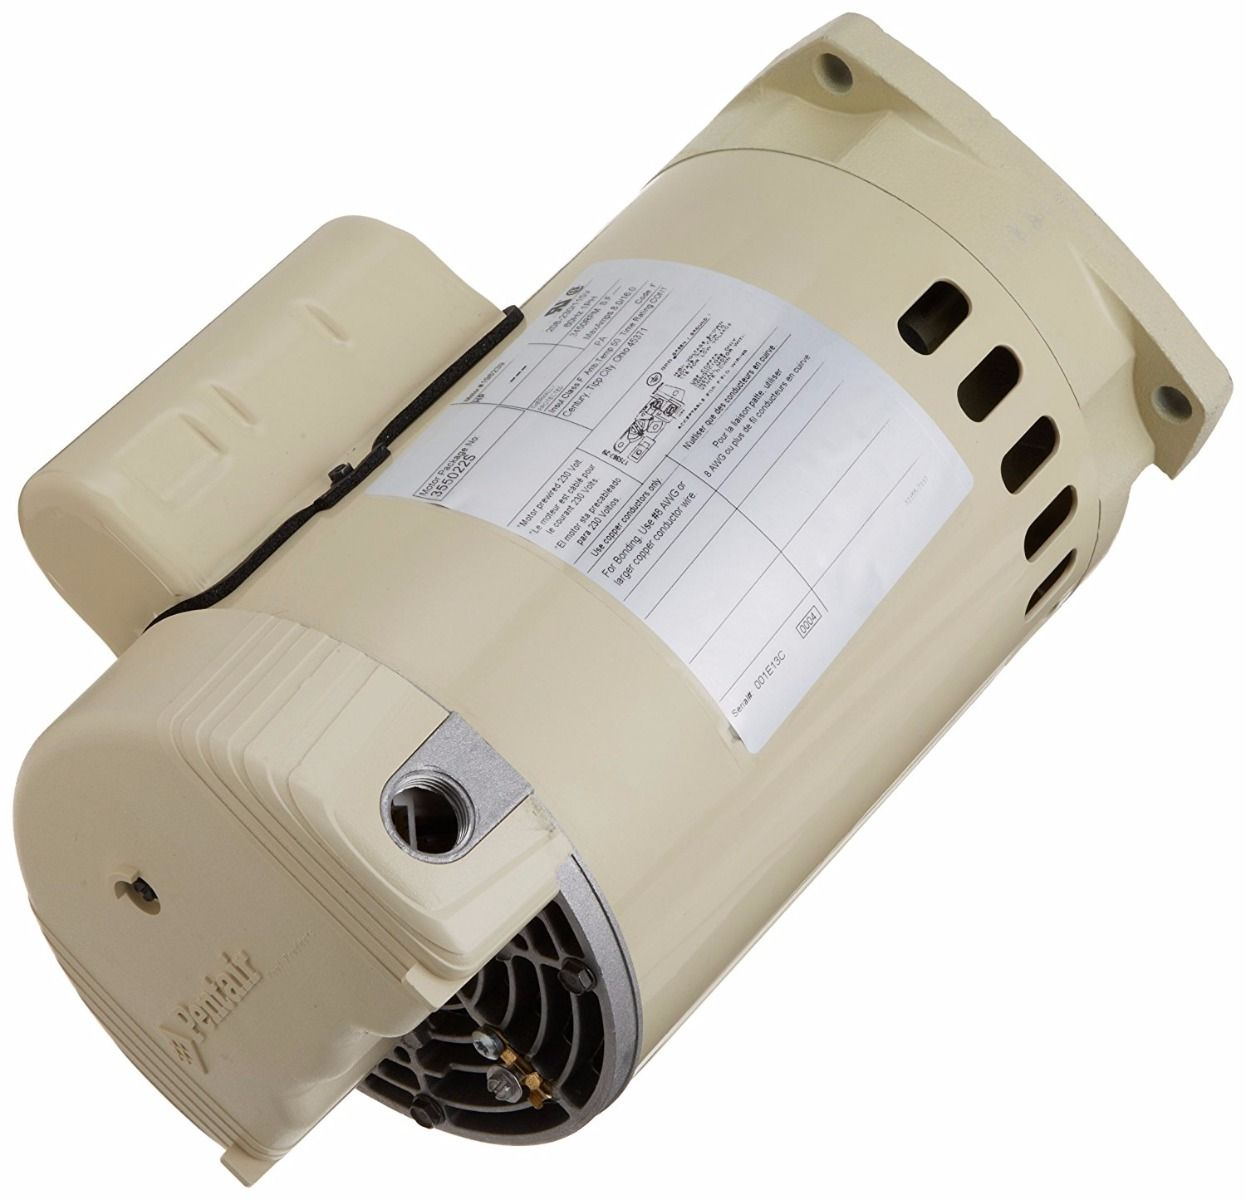 Pentair WhisperFlo / SuperFlo / Pinnacle 1 HP - 1.5 HP Motor 075234S / 355022S - 115/230V